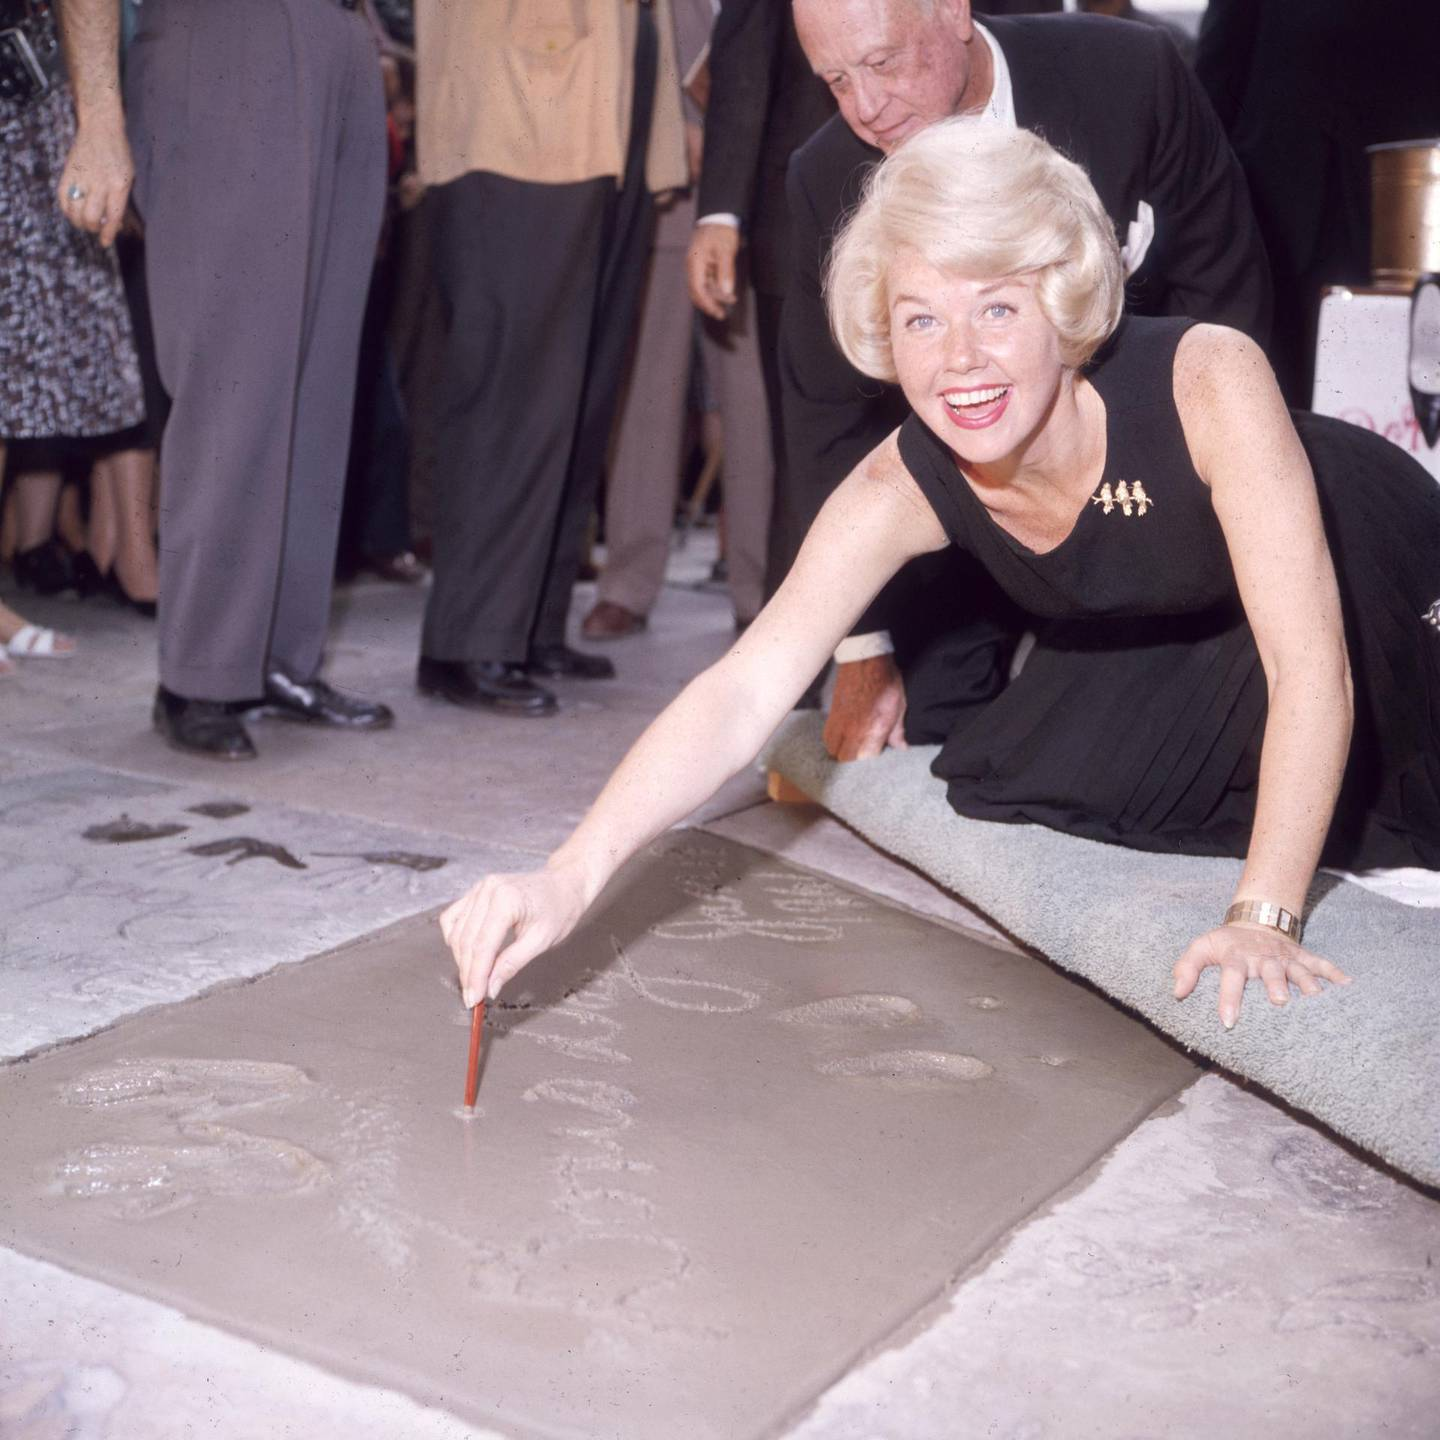 19th January 1961:  American singer and actress Doris Day smiling as she signs her name in cement by her handprints, in front of Mann's (formerly Grauman's) Chinese Theater, on Hollywood Boulevard, Hollywood, California.  (Photo by Hulton Archive/Getty Images)